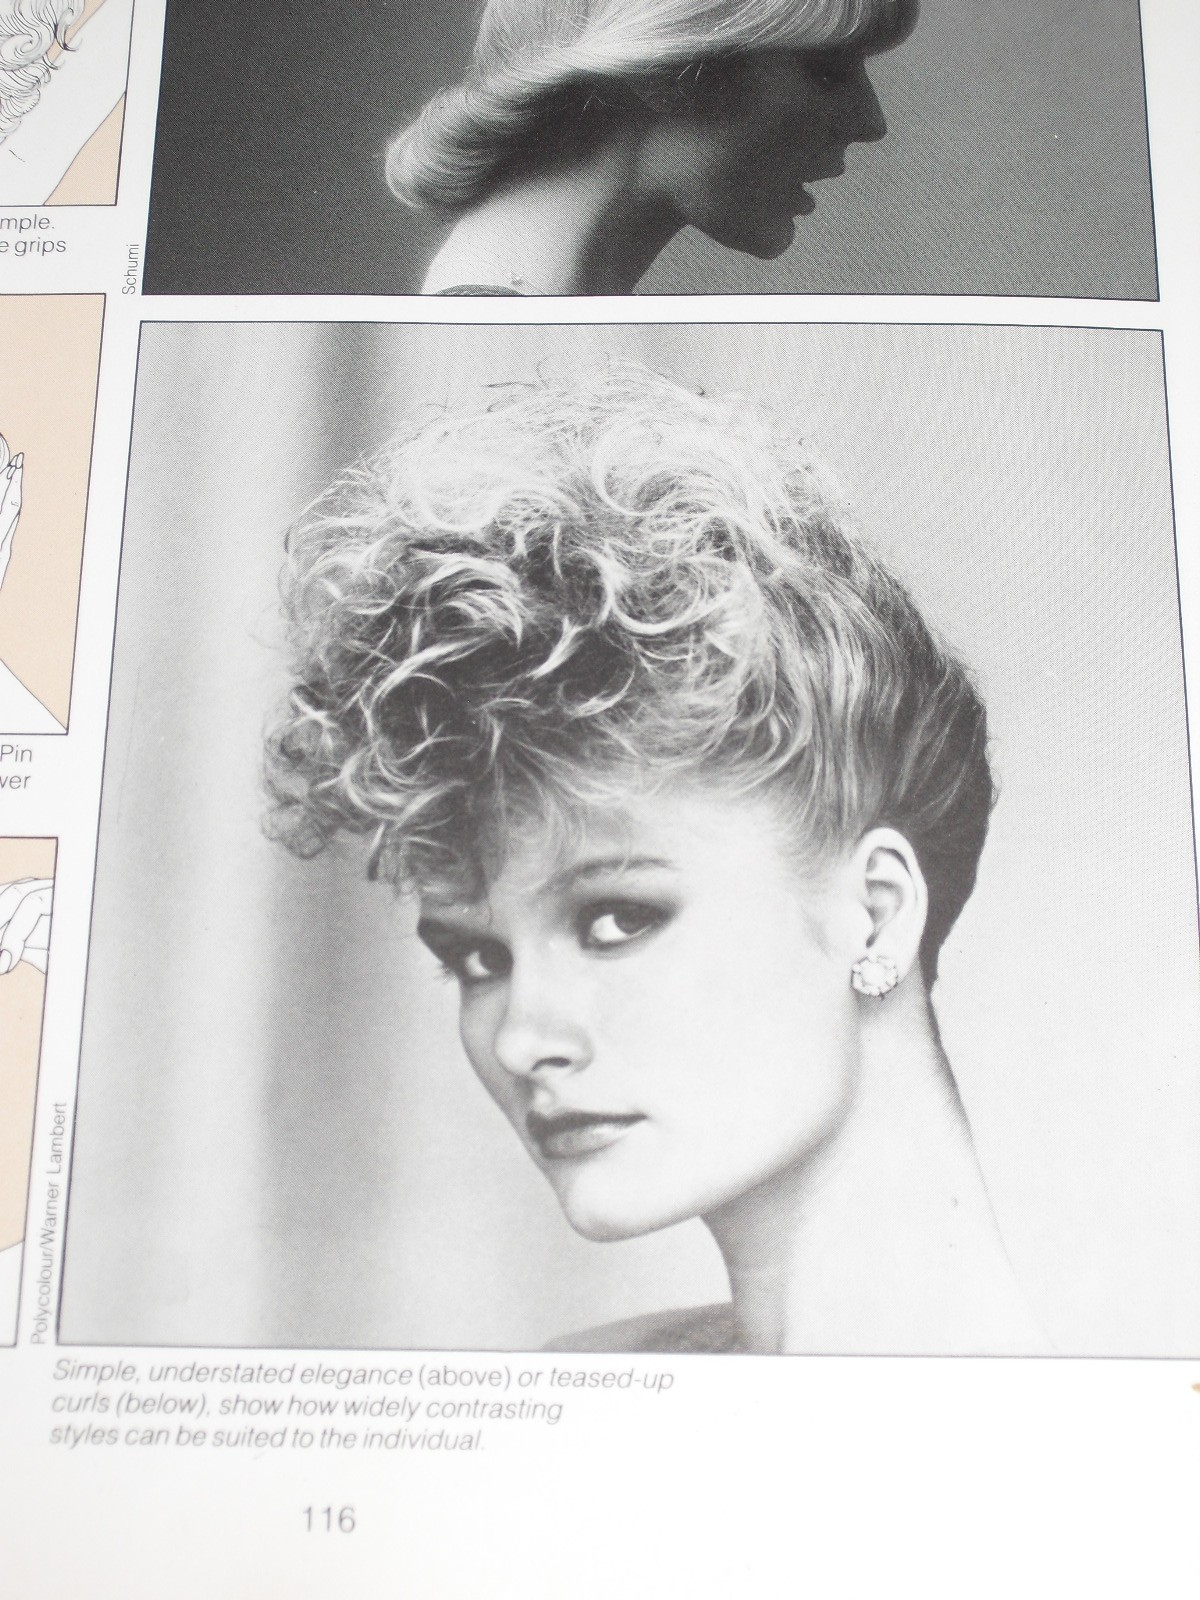 Woman with 80's hair